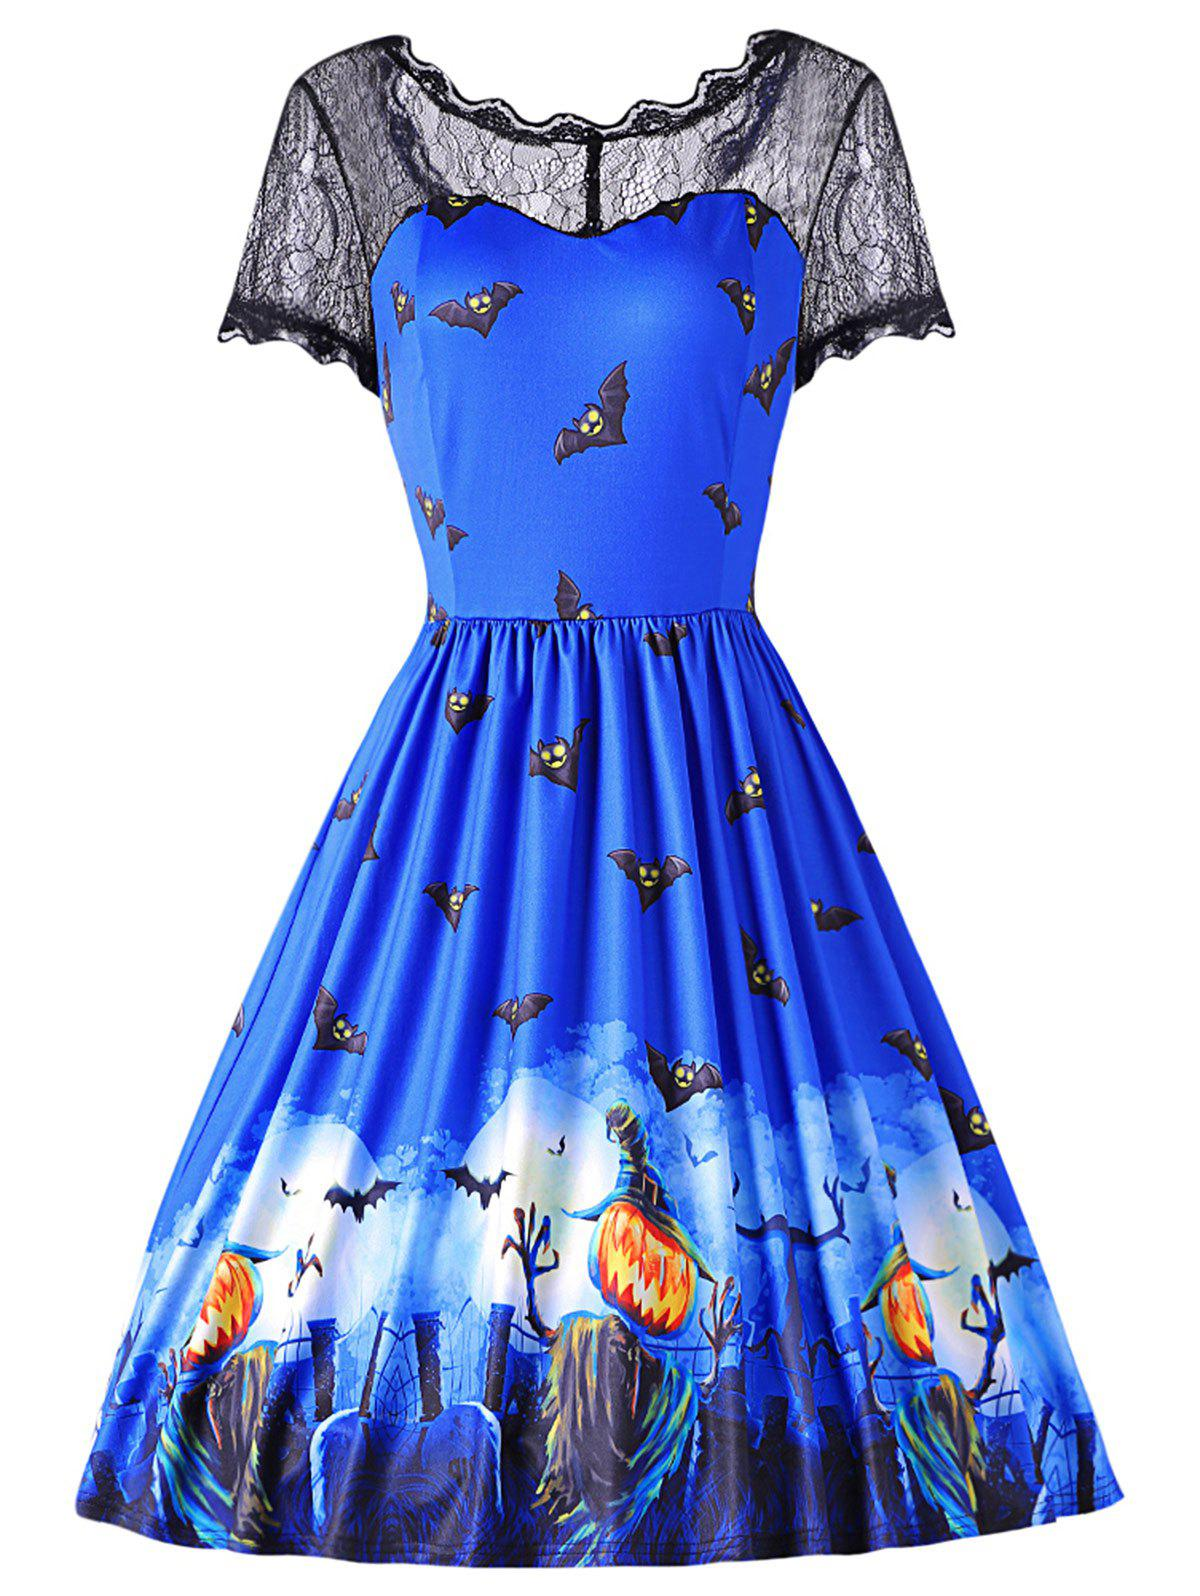 Fashion Round Collar Short Sleeve Spliced Lace Print Halloween Dress